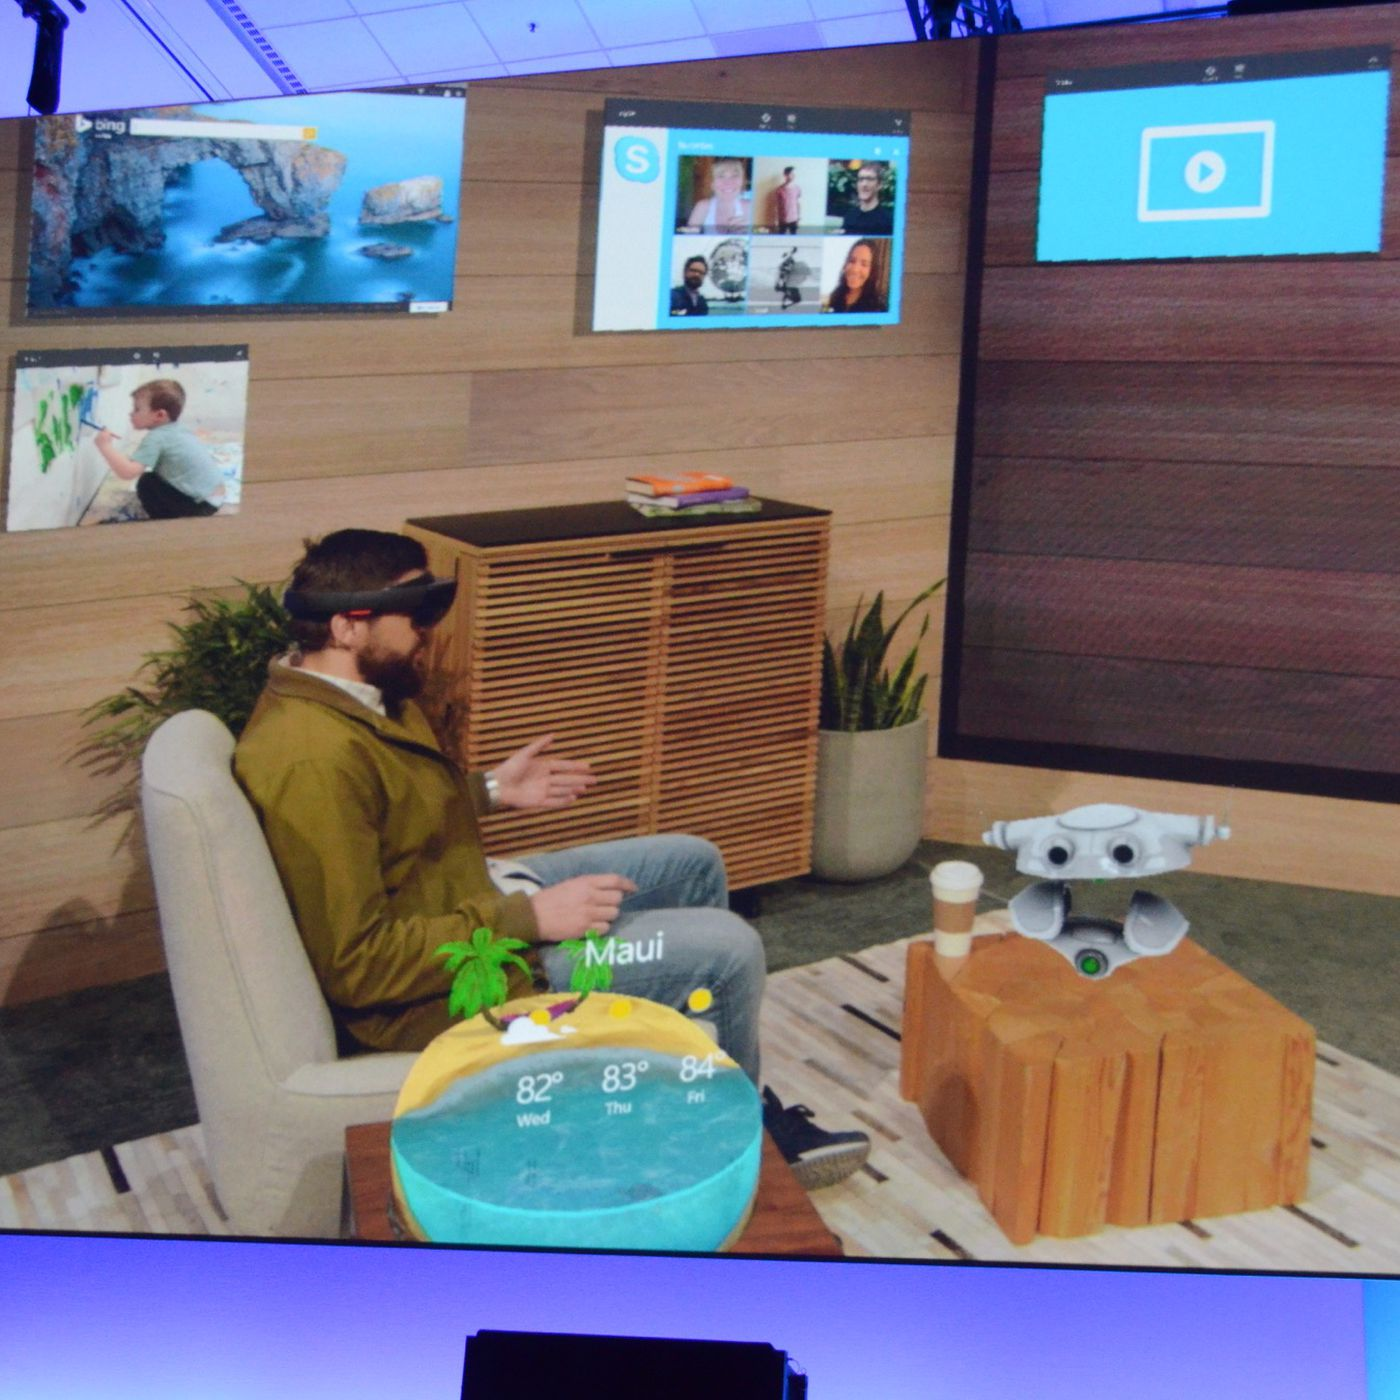 Windows 10 apps in HoloLens look amazing and completely